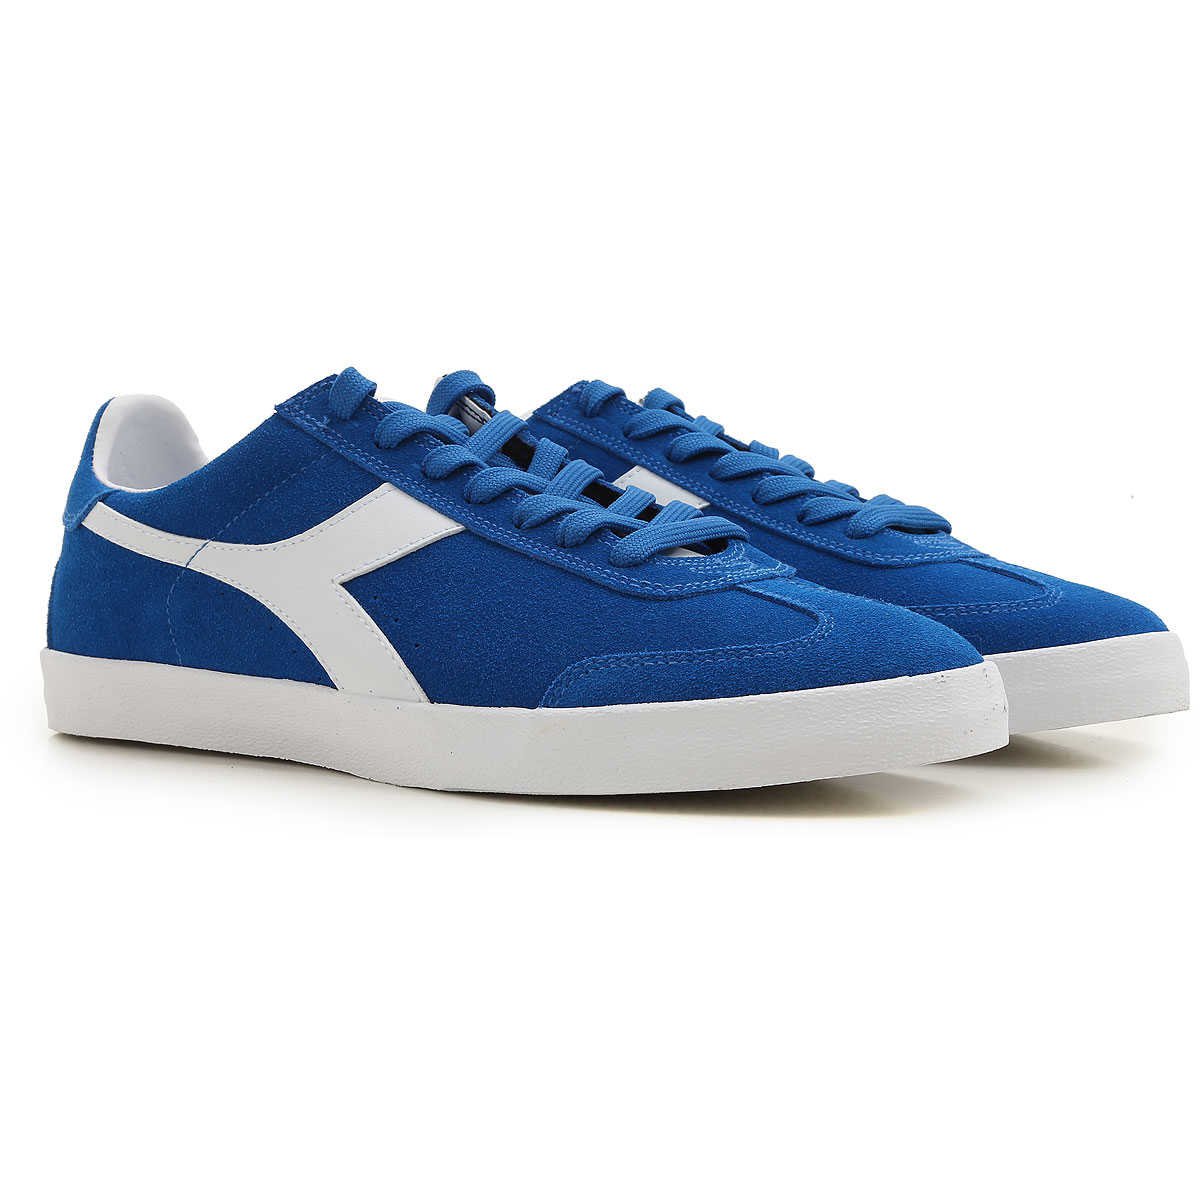 Diadora Sneakers for Men On Sale in Outlet